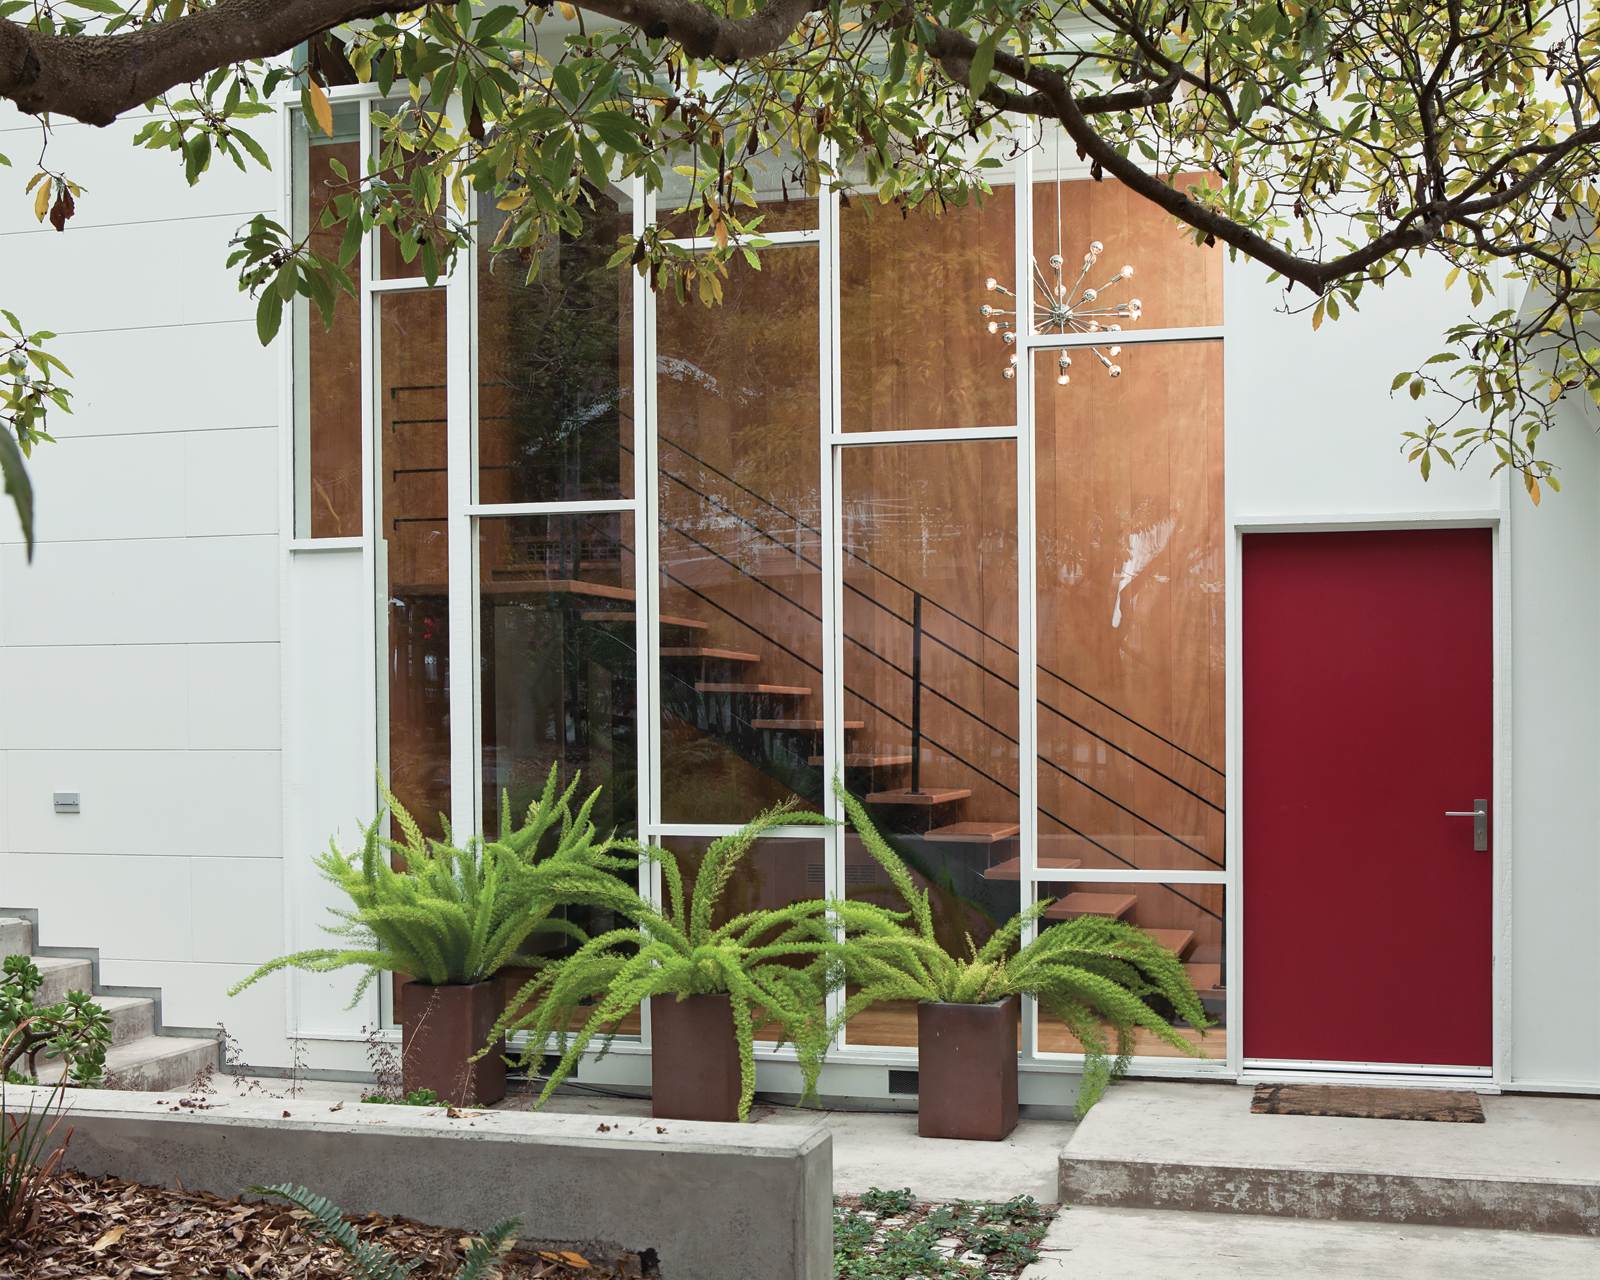 LEED Platinum certification modern home renovation